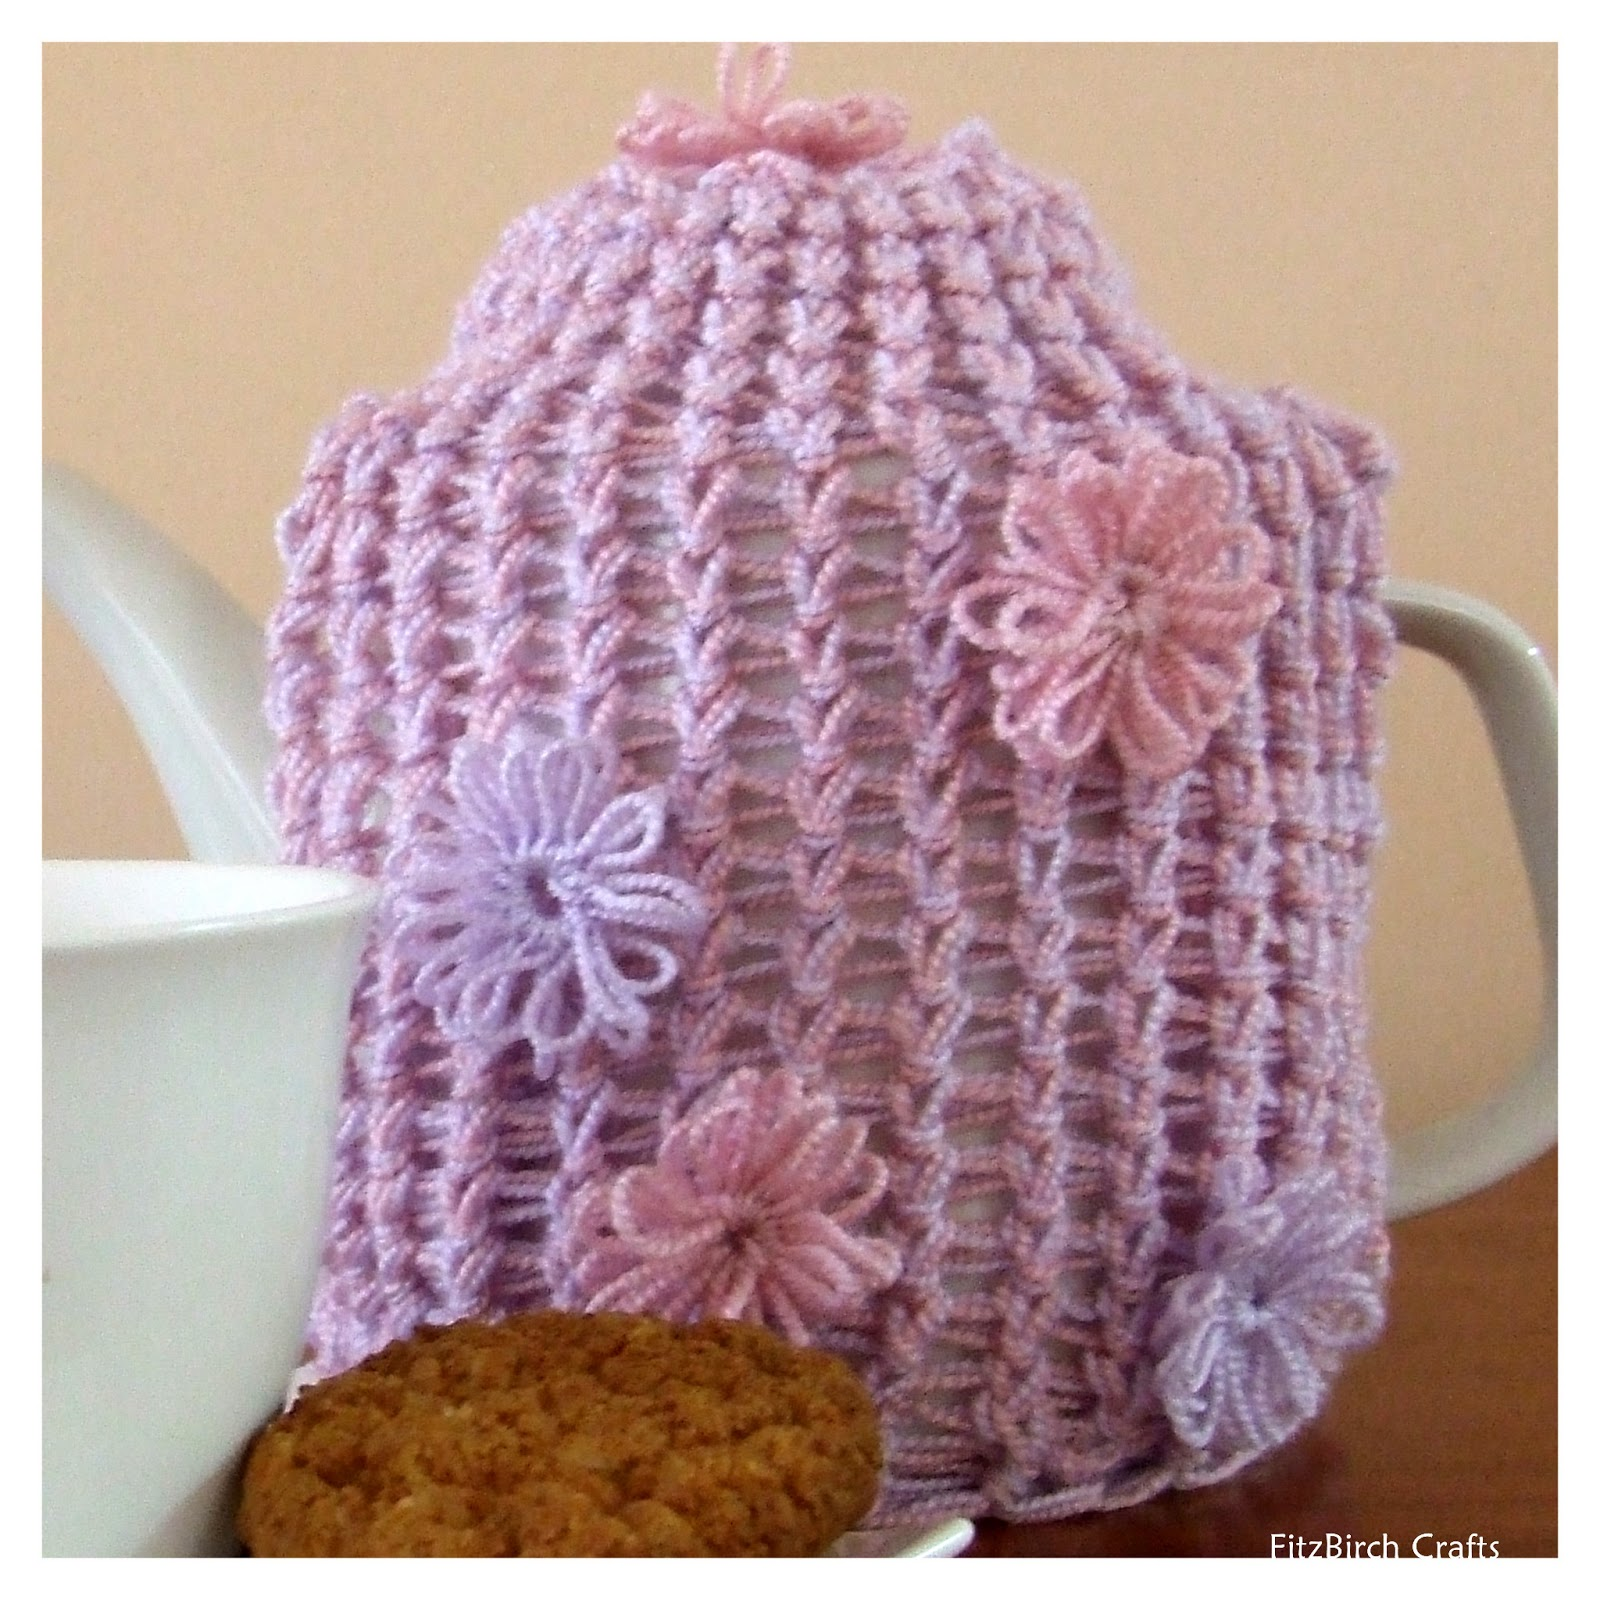 FitzBirch Crafts: Loom Knit Tea Cosy